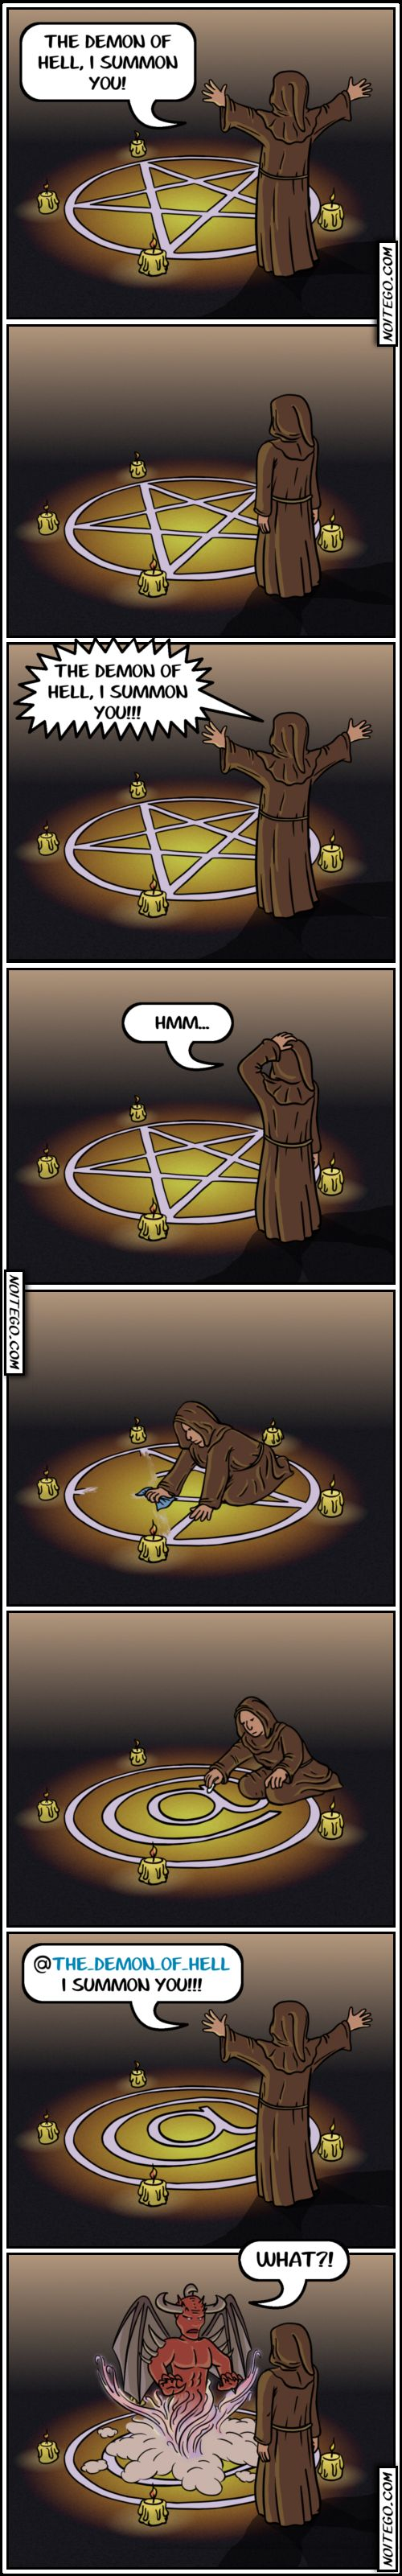 What if someone tried to summon the devil only to find that they themselves show up in the pentagram?